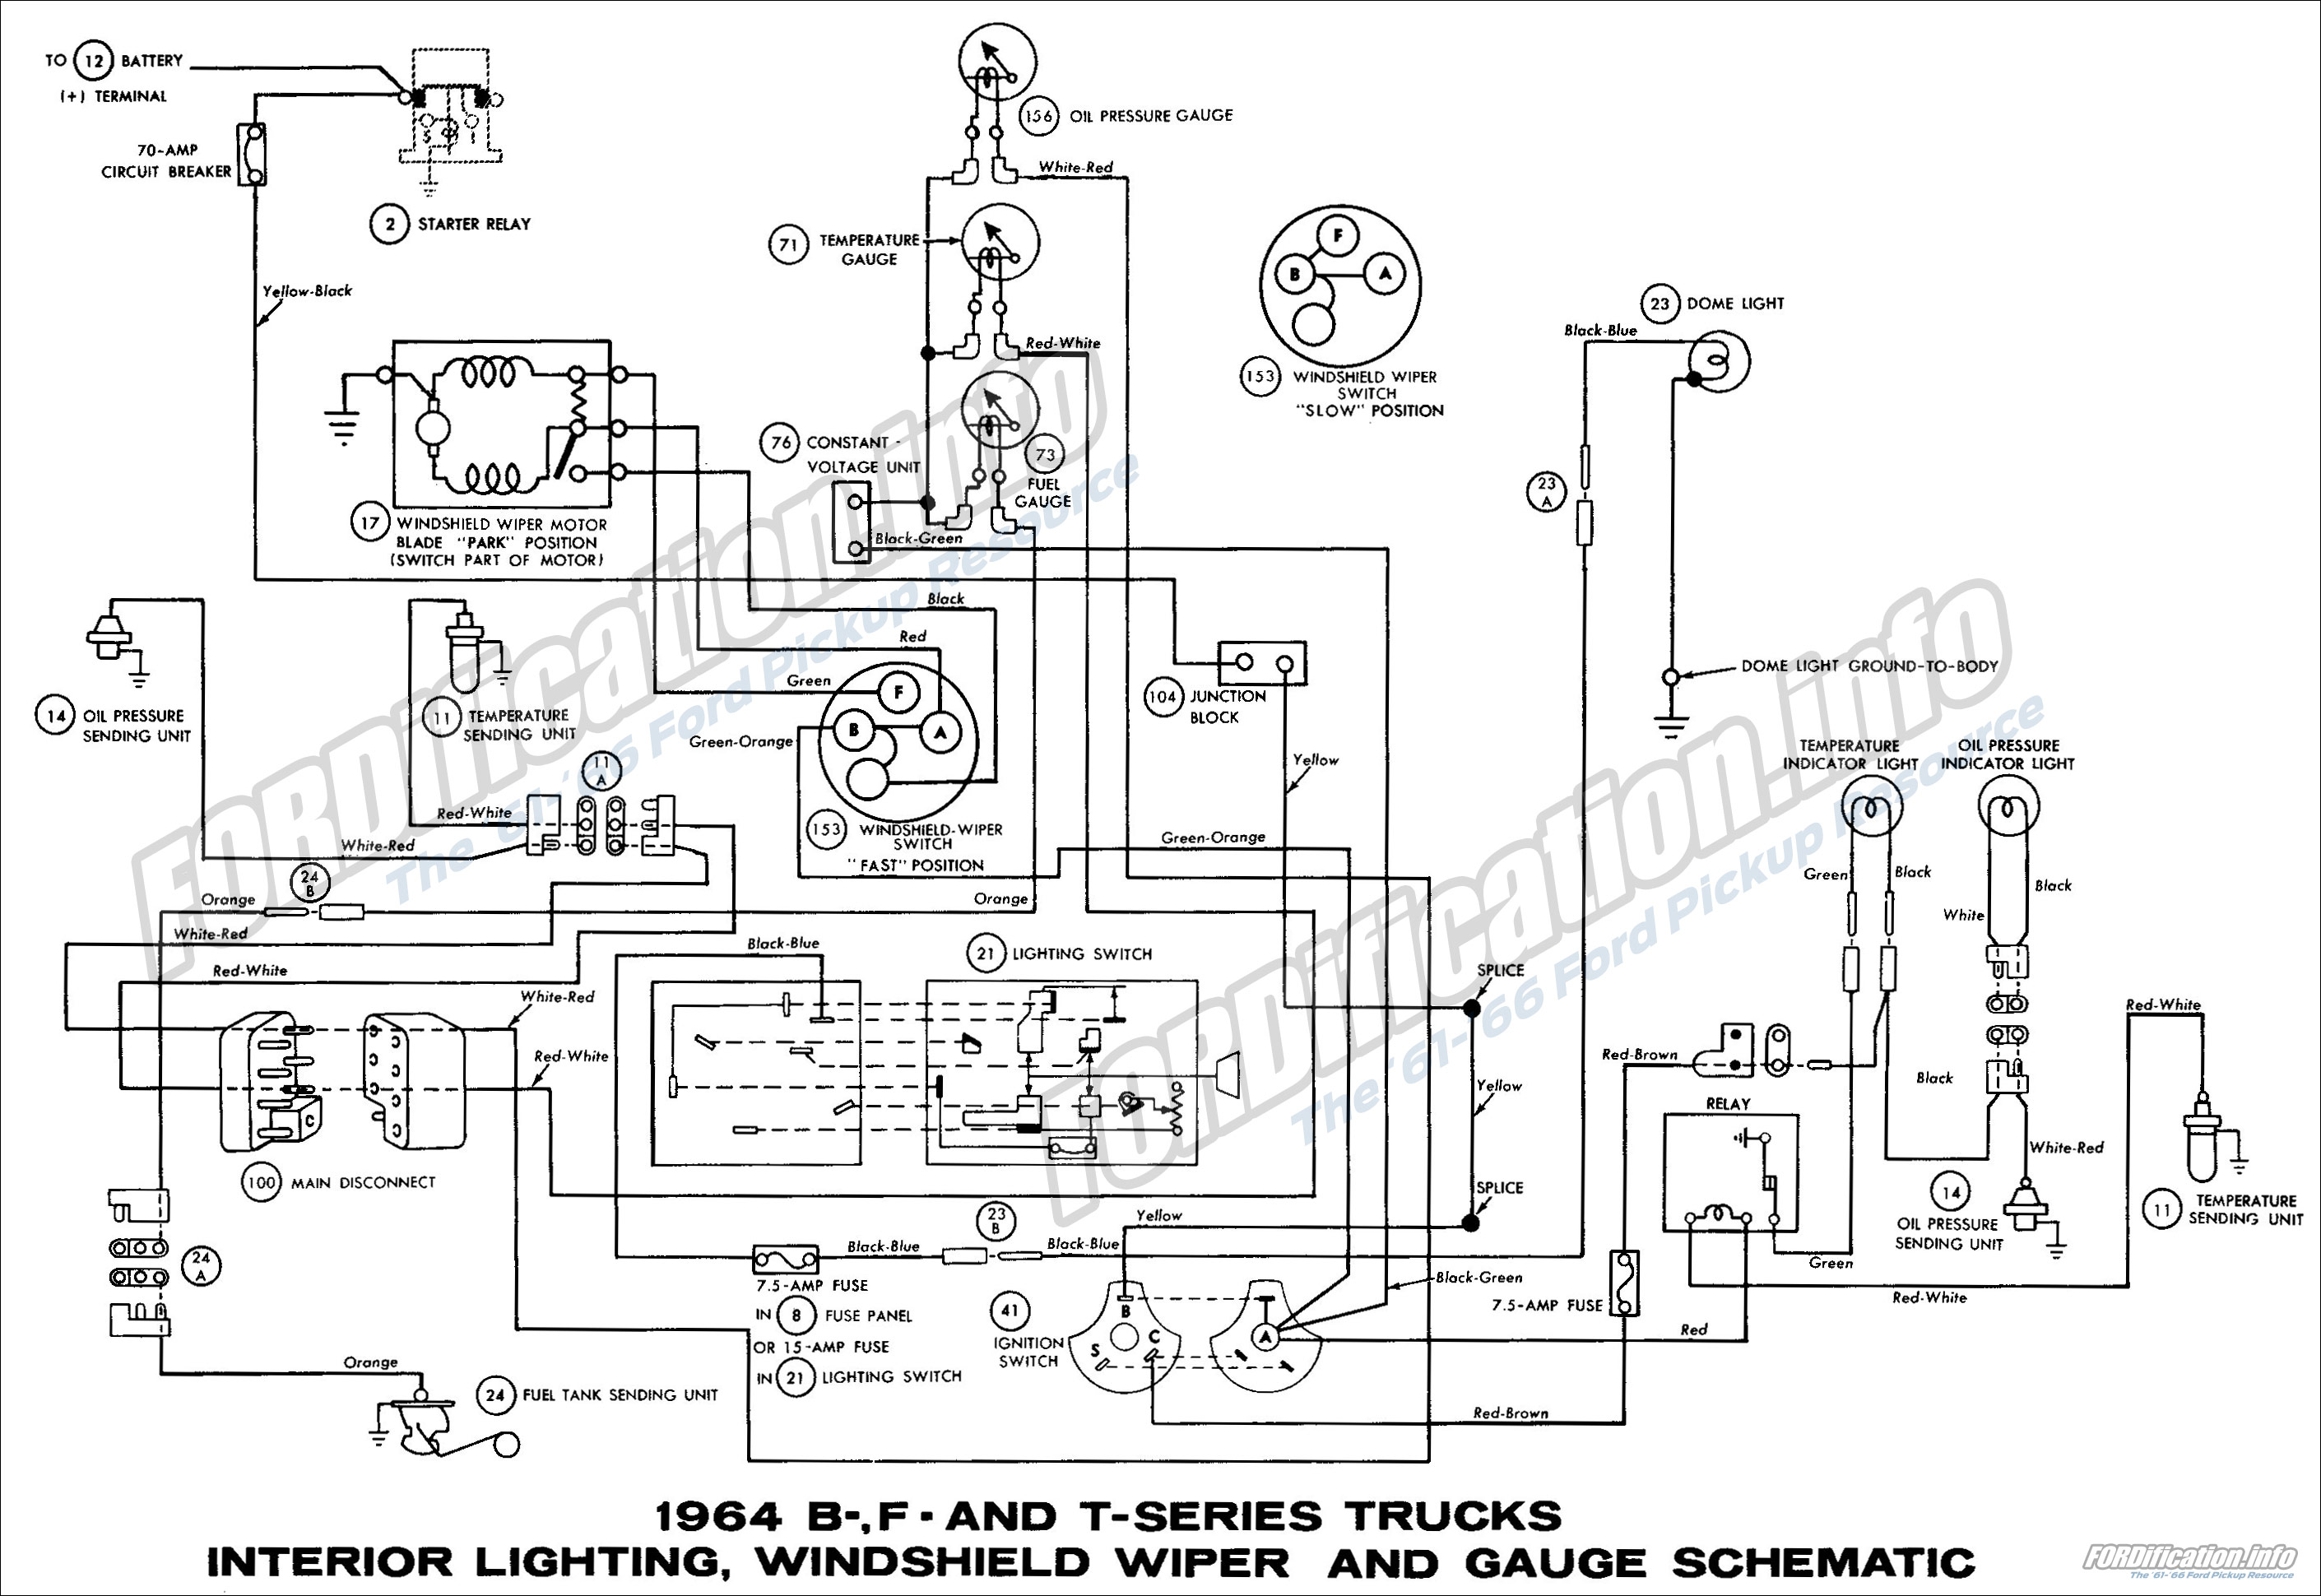 1964 ford truck wiring diagrams - fordification.info - the ... 64 ford f100 solenoid wiring